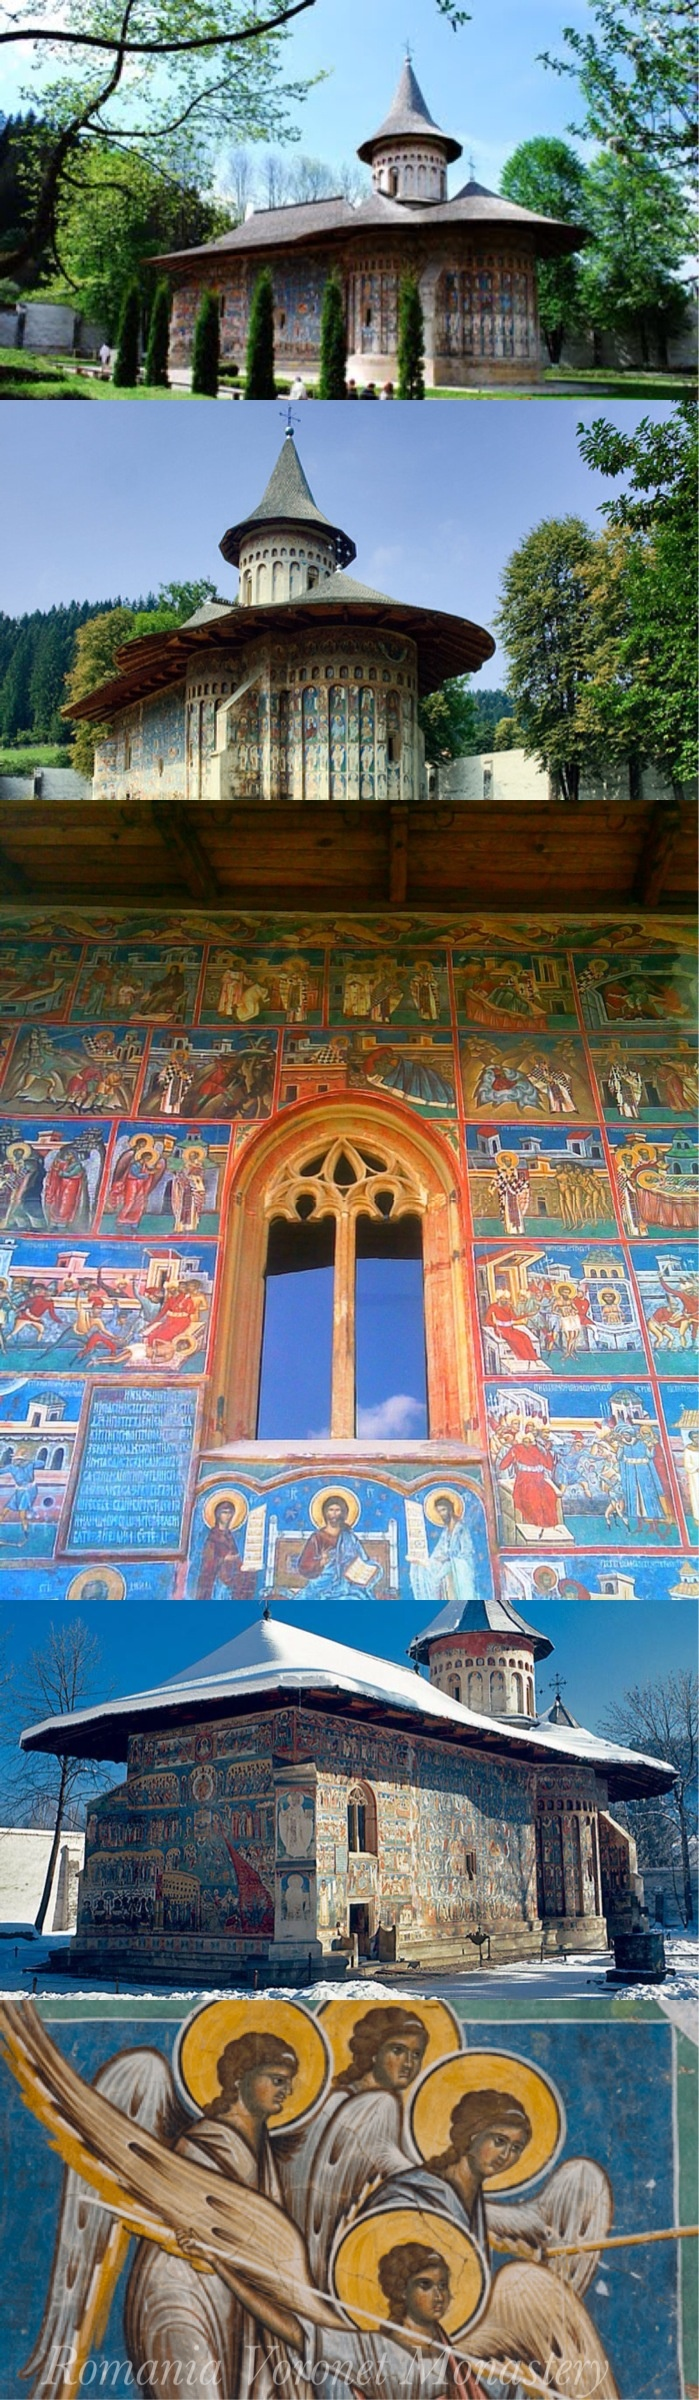 "Voroneț is a monastery in Romania, located in the town of Gura Humorului, Moldavia. It is one of the famous painted monasteries from southern Bukovina, in Suceava County. Between May and September 1488, Stephen III of Moldavia (known as ""Stephen the Great"", in Romanian Ștefan cel Mare) built the Voroneț Monastery  to commemorate the victory at Battle of Vaslui. Often known as the ""Sistine Chapel of the East"","